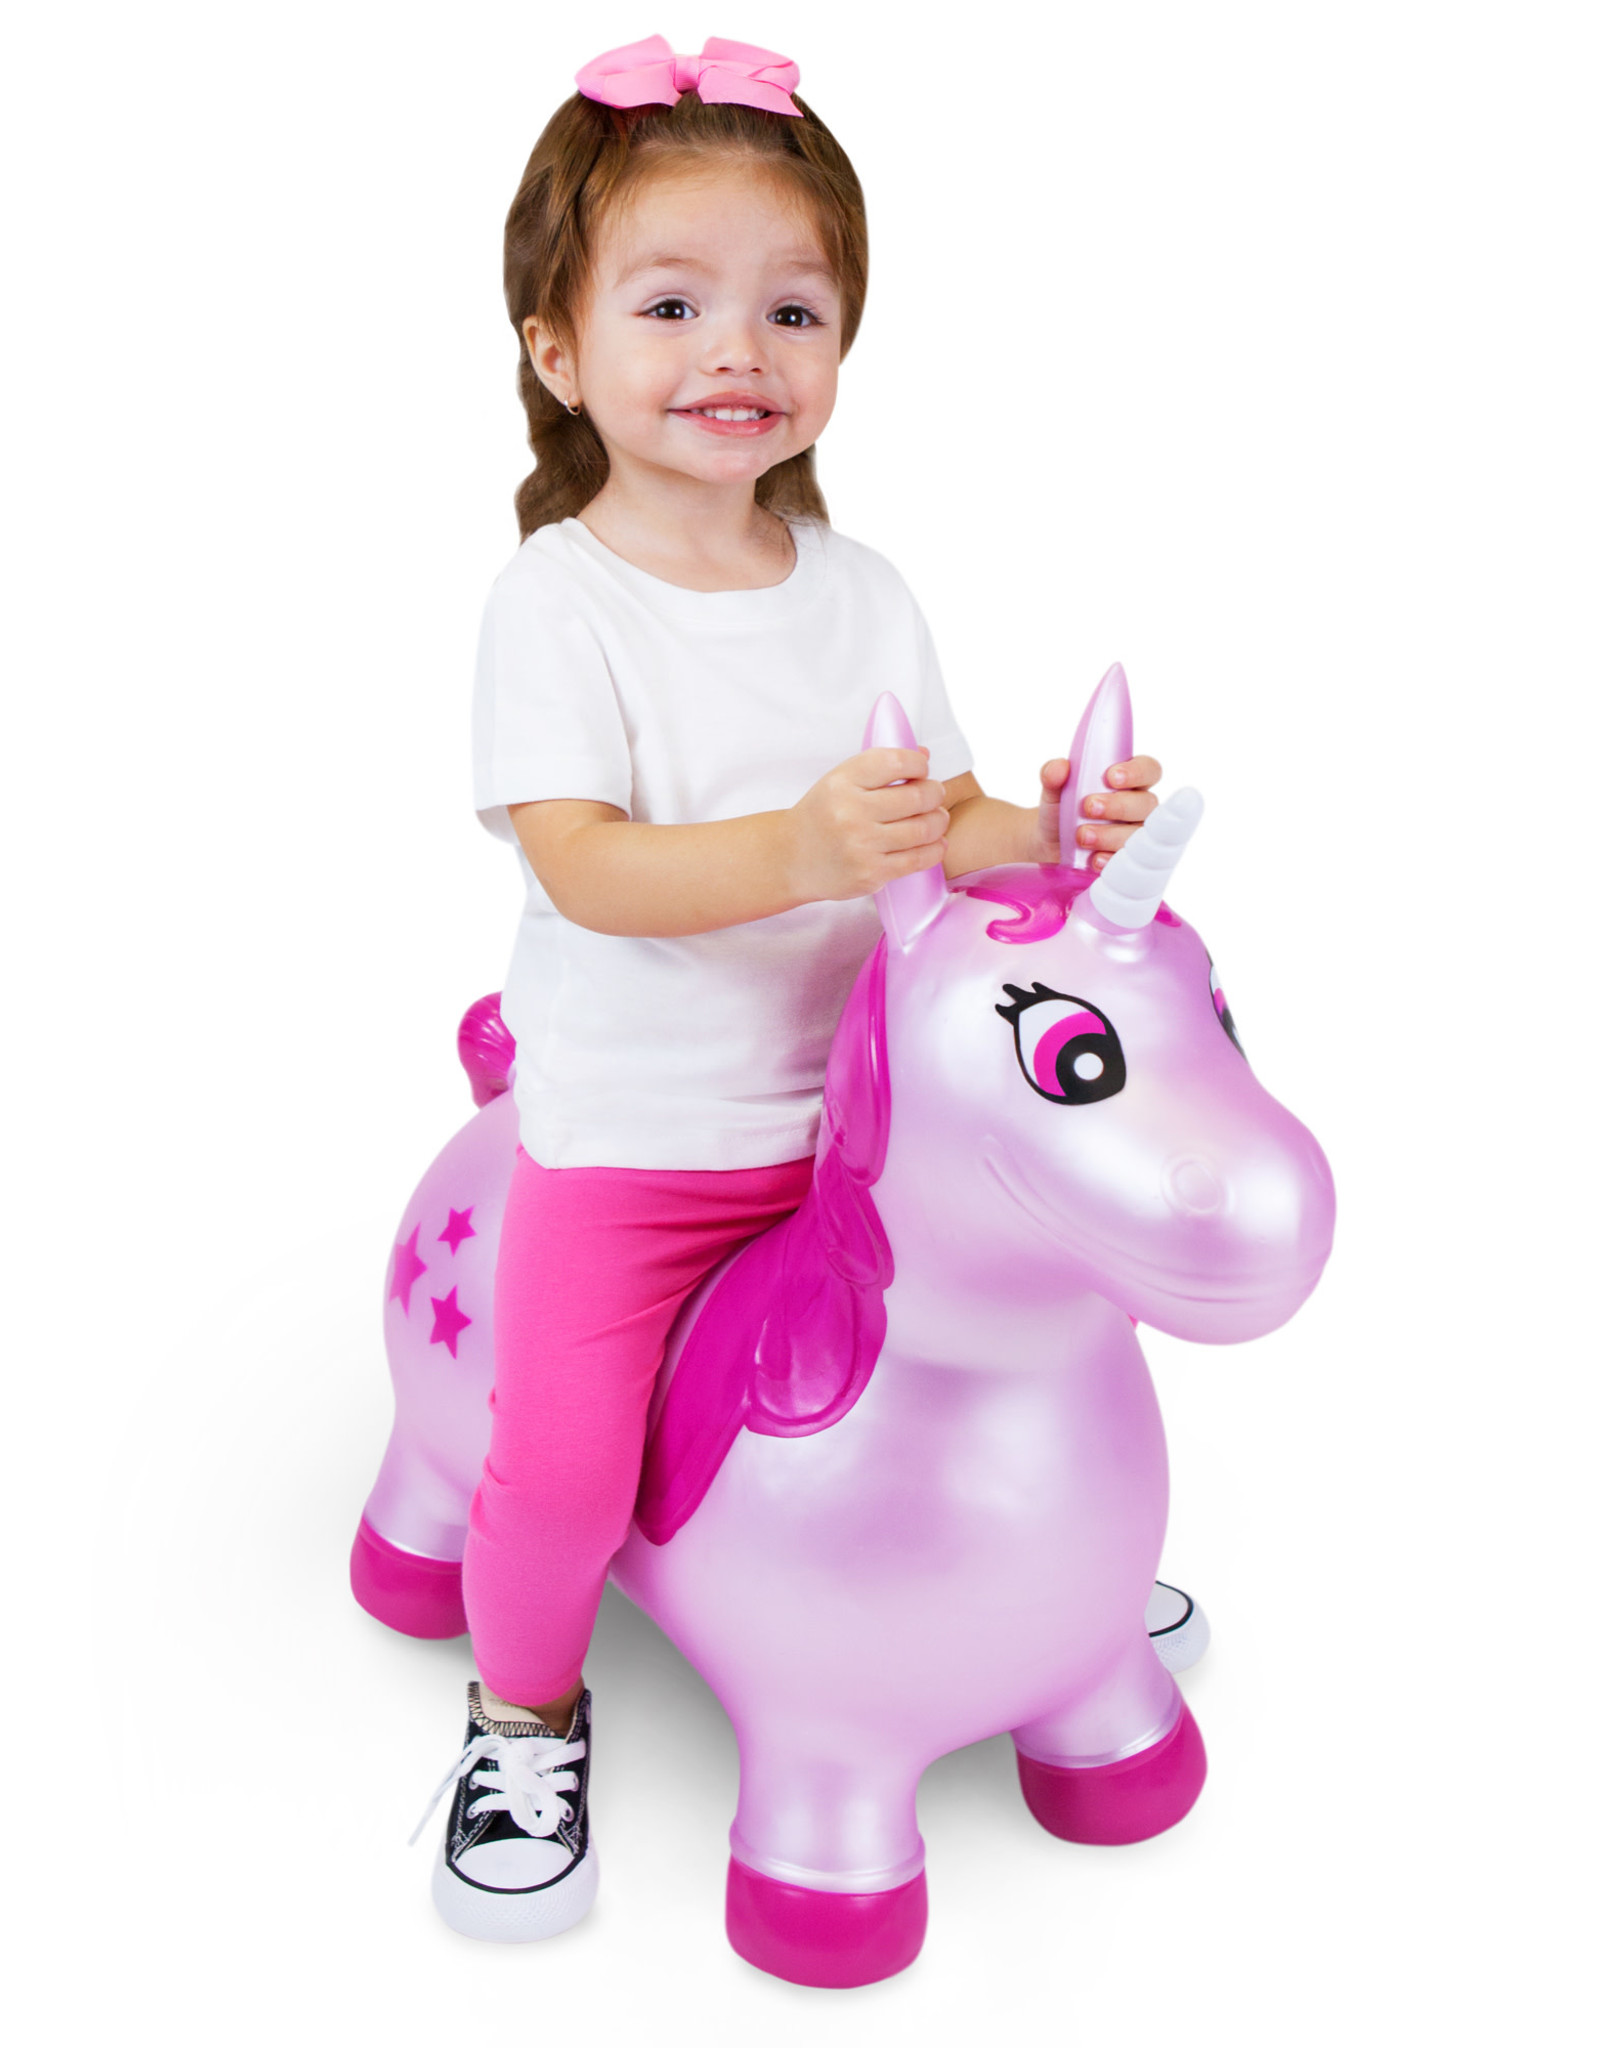 Waddle Unicorn Bouncer Pink